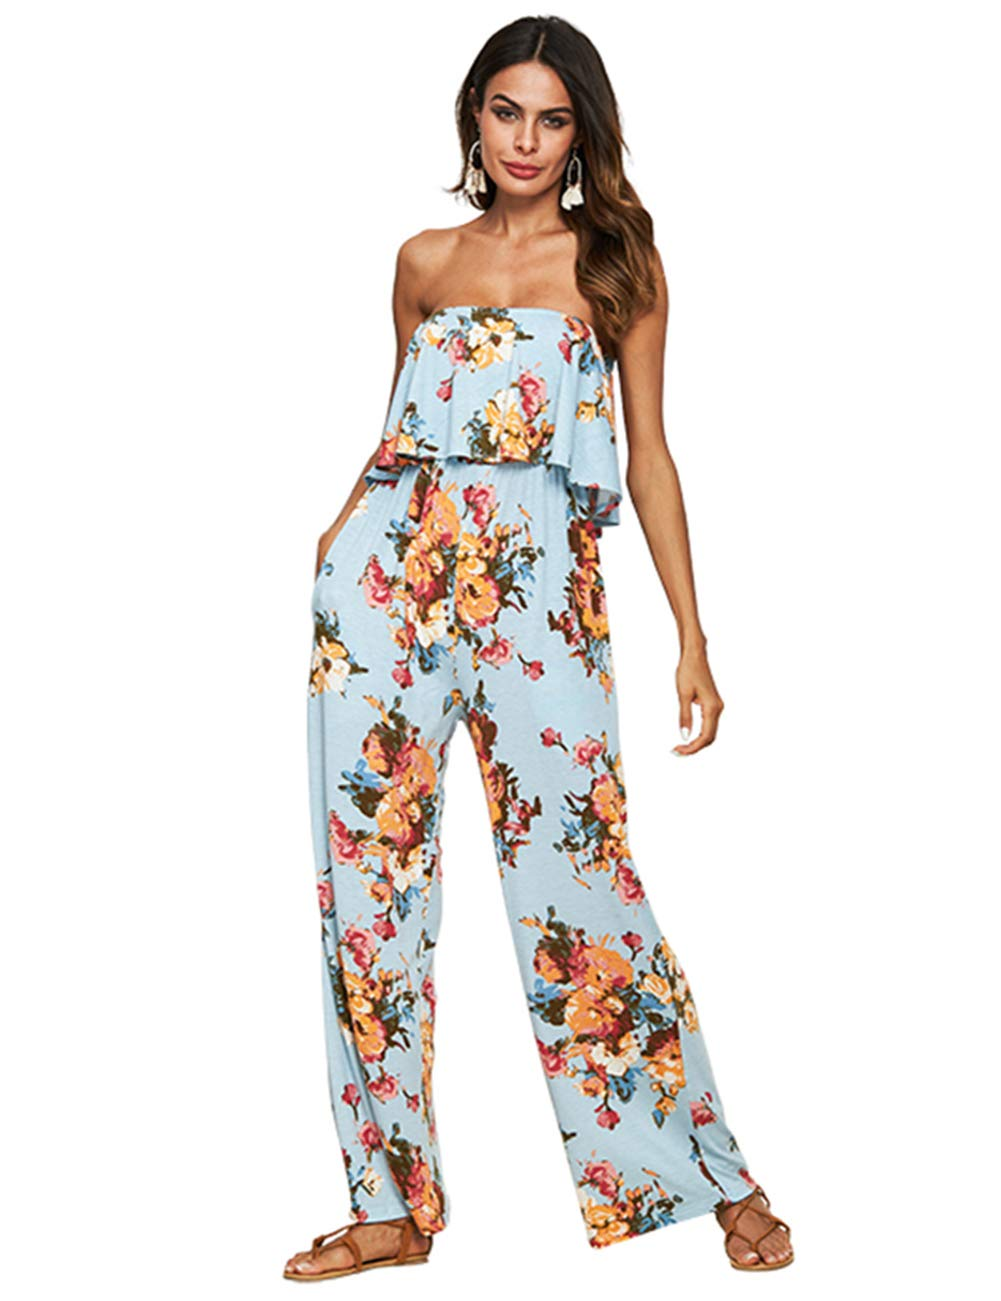 Desirepath Women Jumpsuits and Rompers Sexy Floral Printed Ruffled Flounce Bandeau Wide Leg Pants Blue